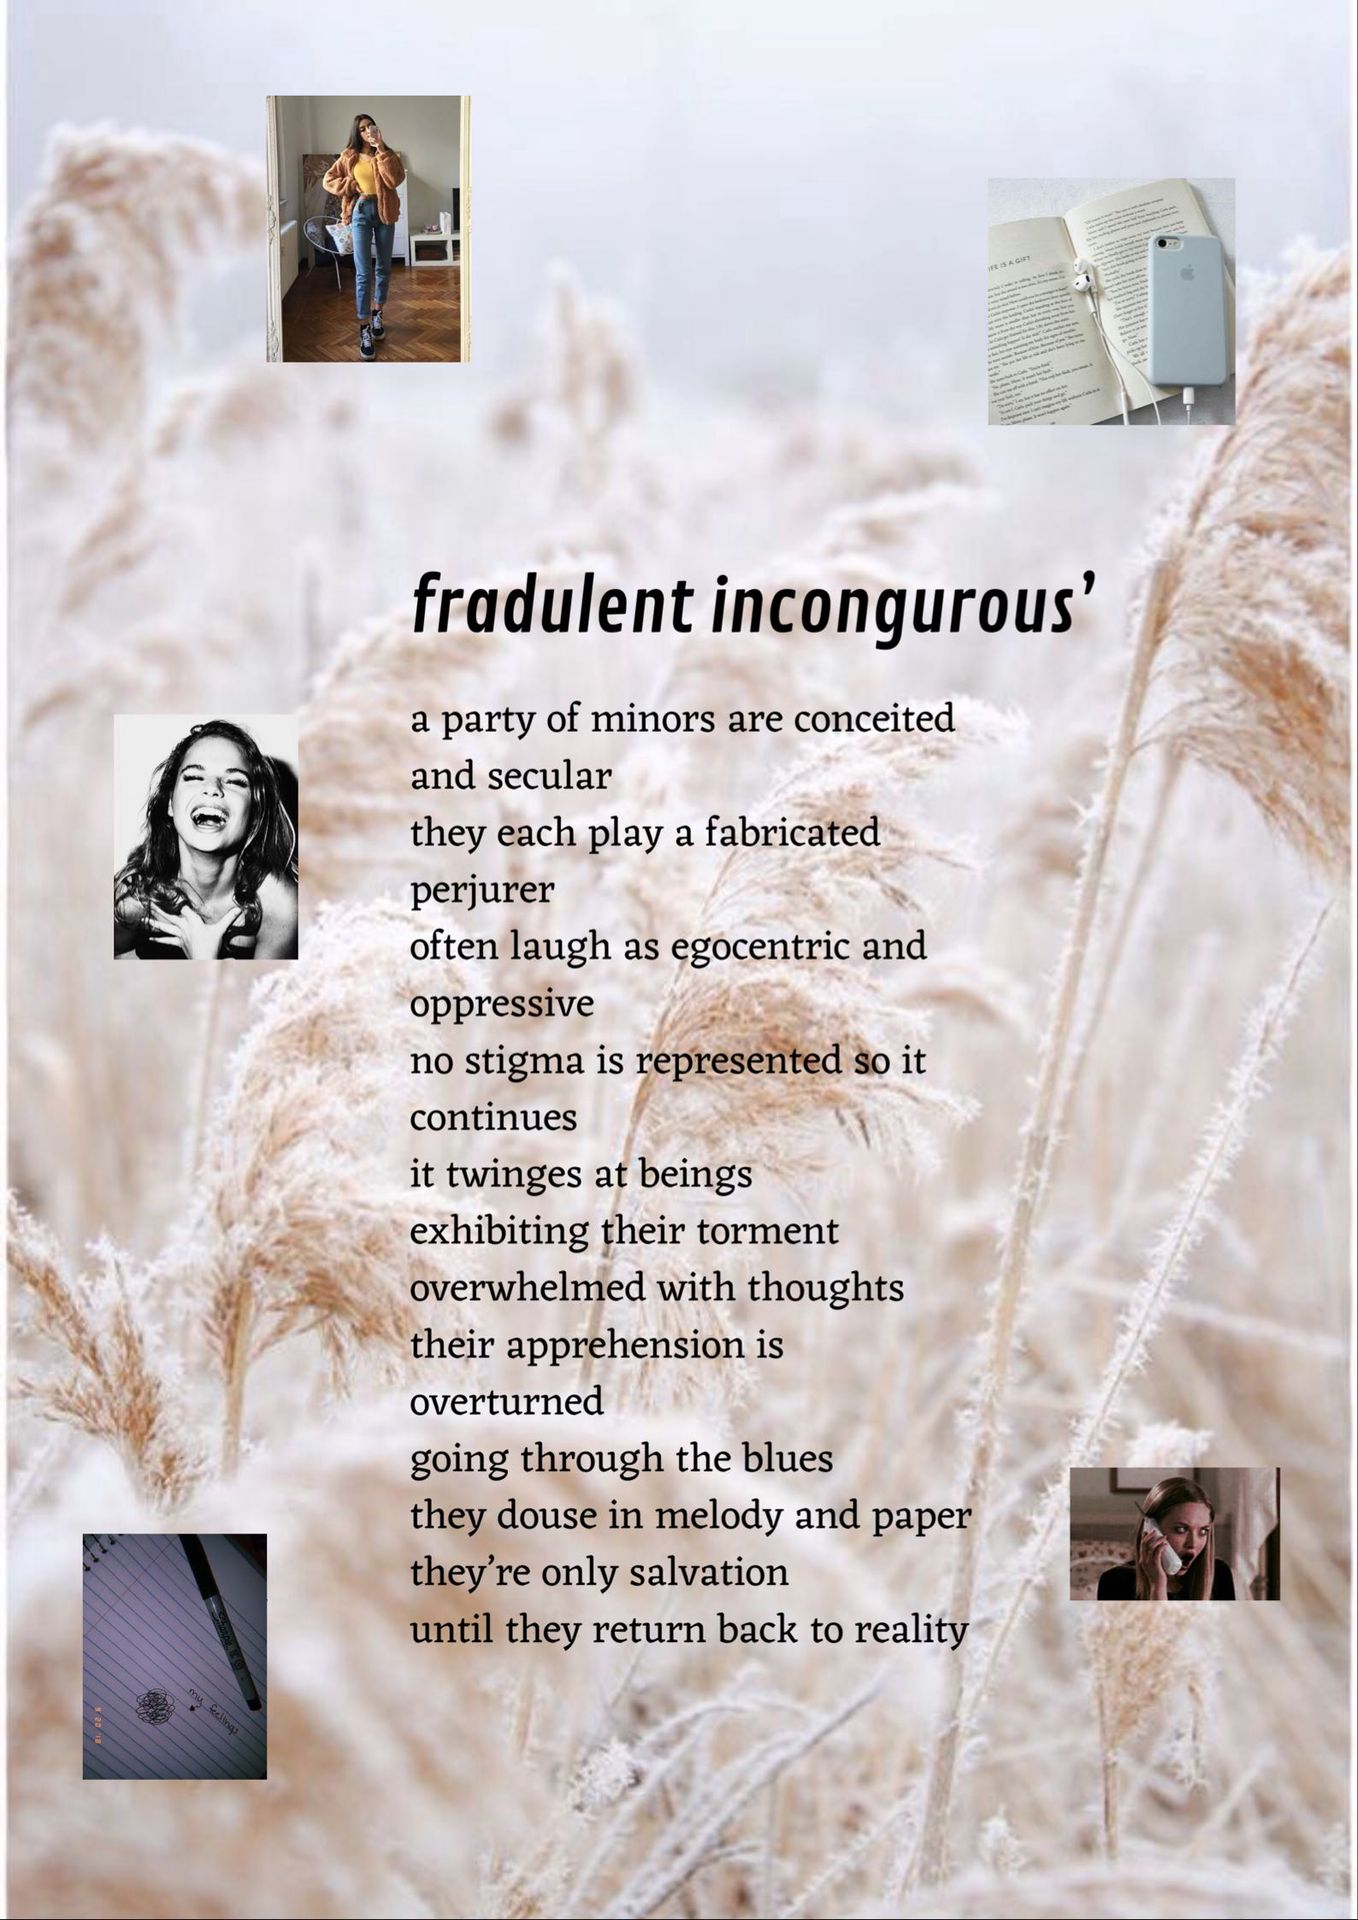 my conjecture - fraudulent incongruous' - Wattpad